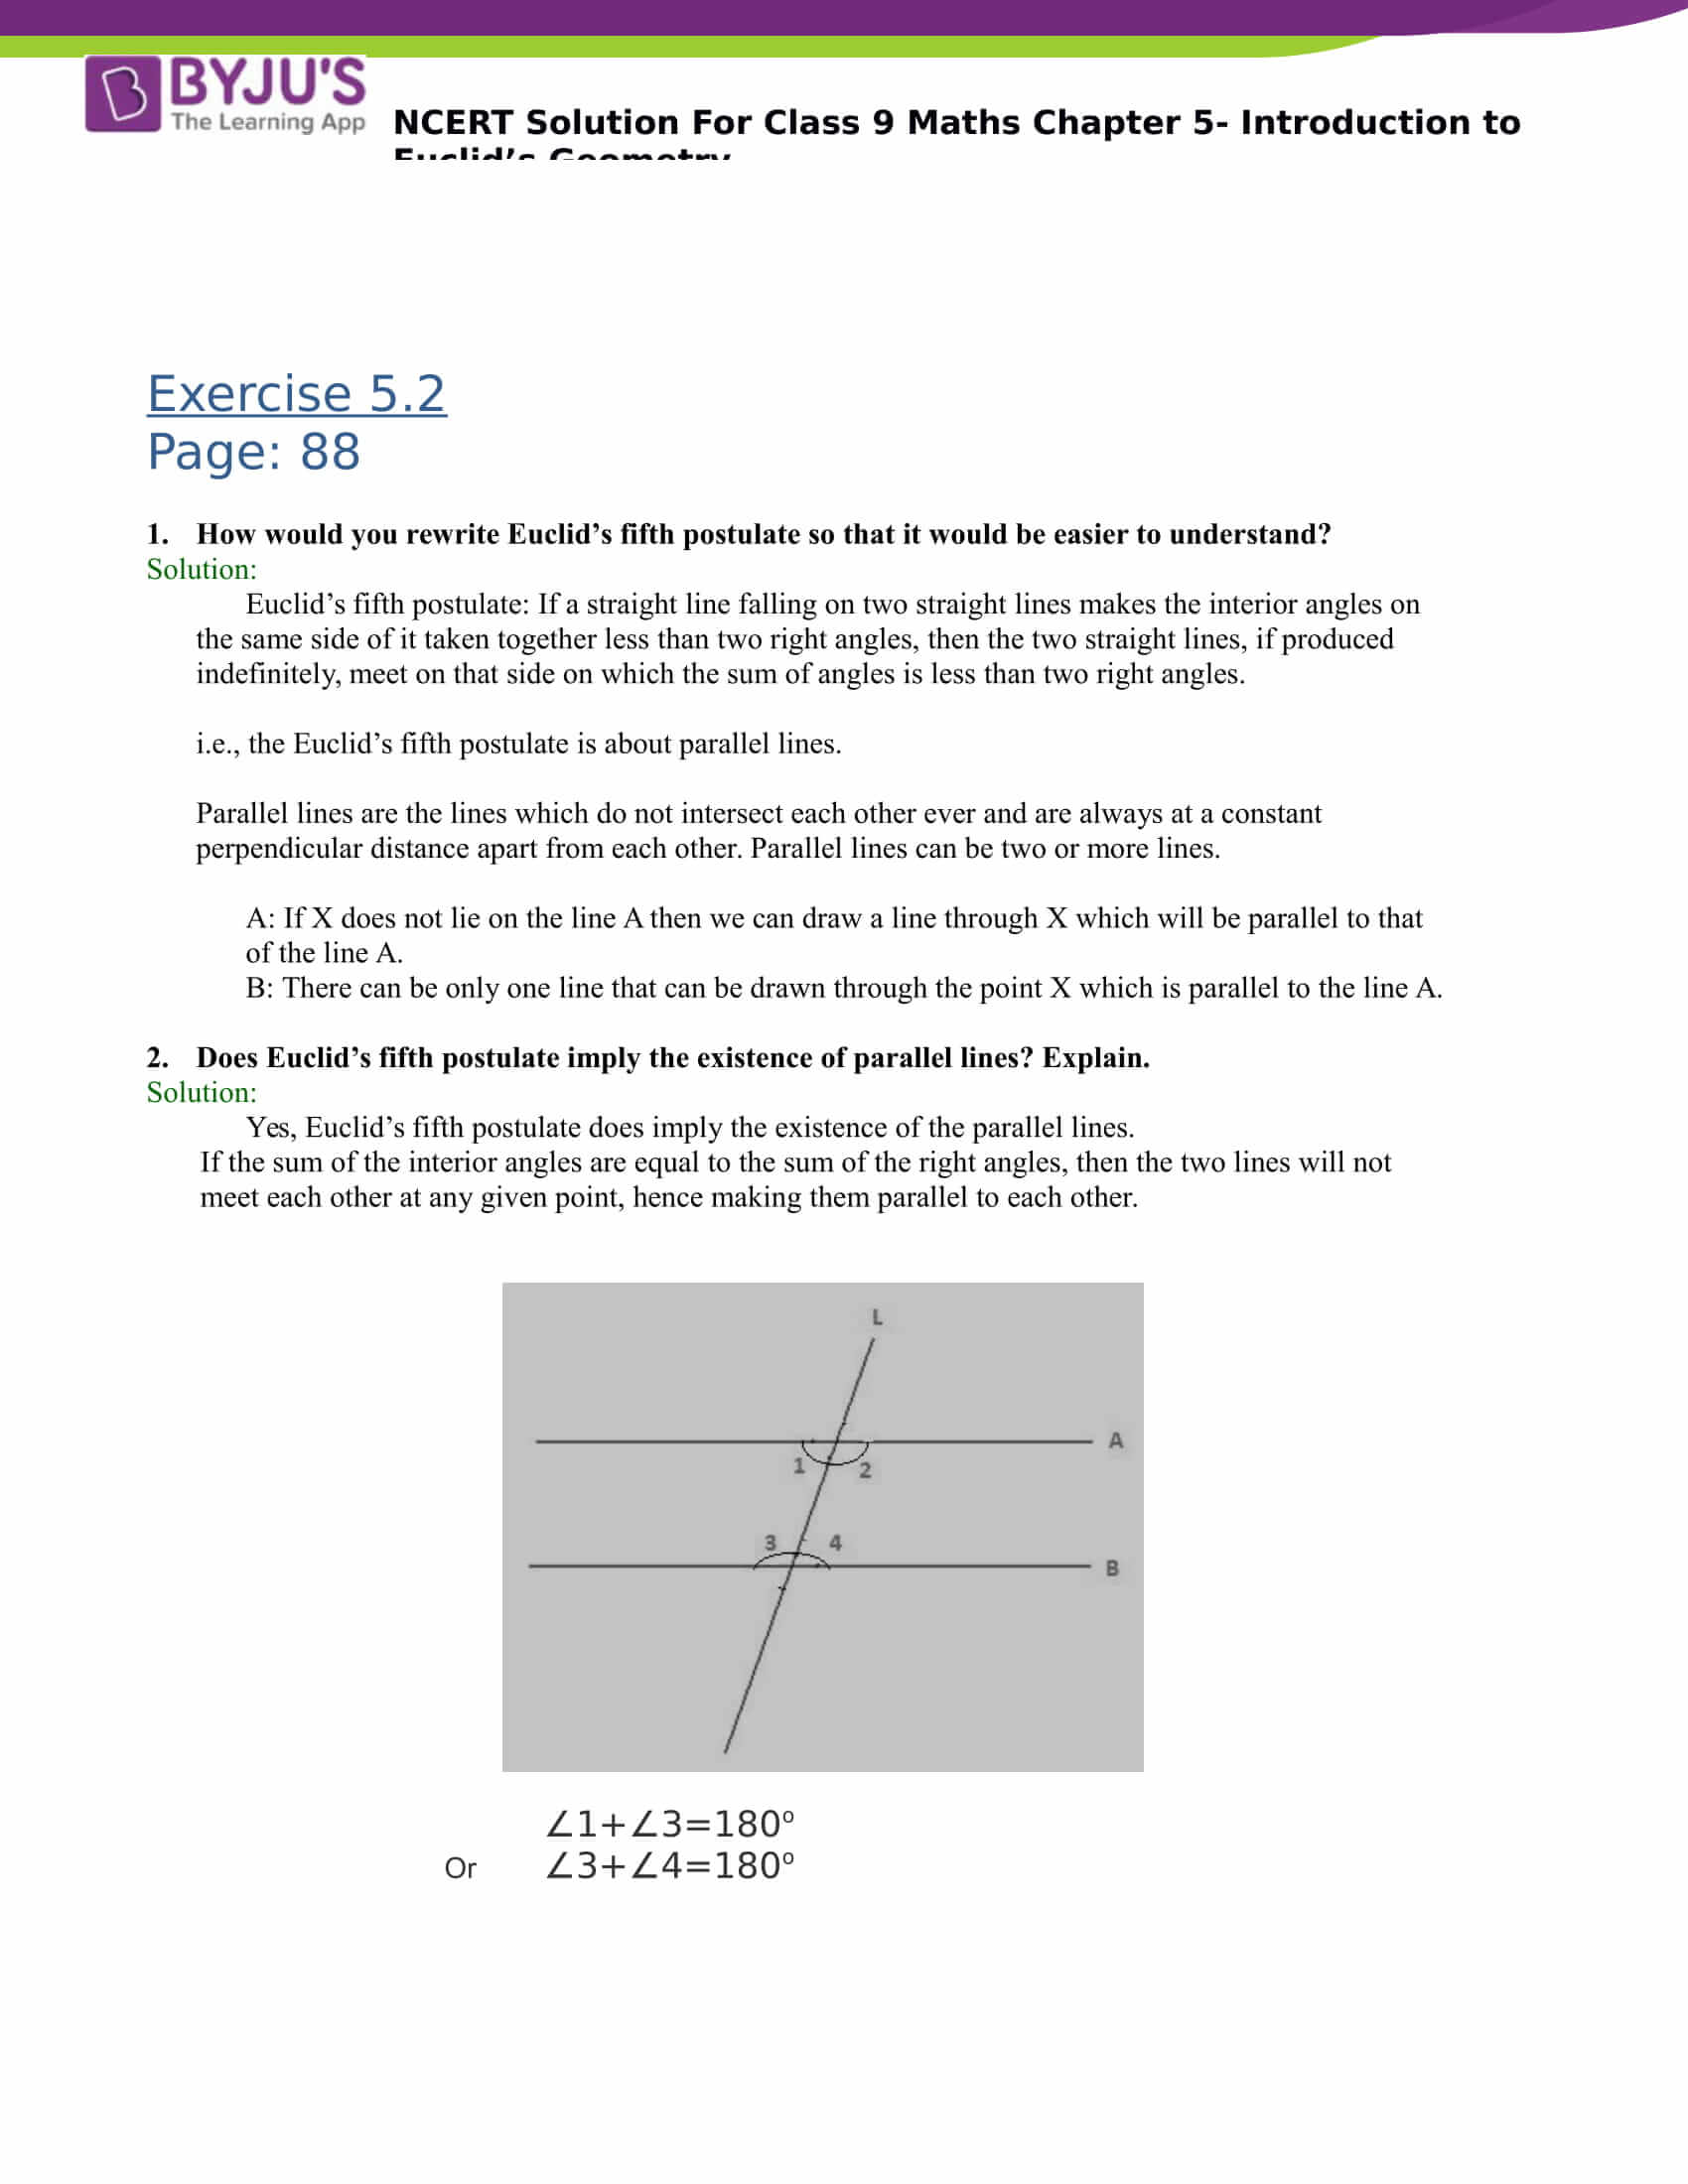 NCERT Solutions for class 9 Maths Chapter 5 Introduction to Euclids Geometry Part 5